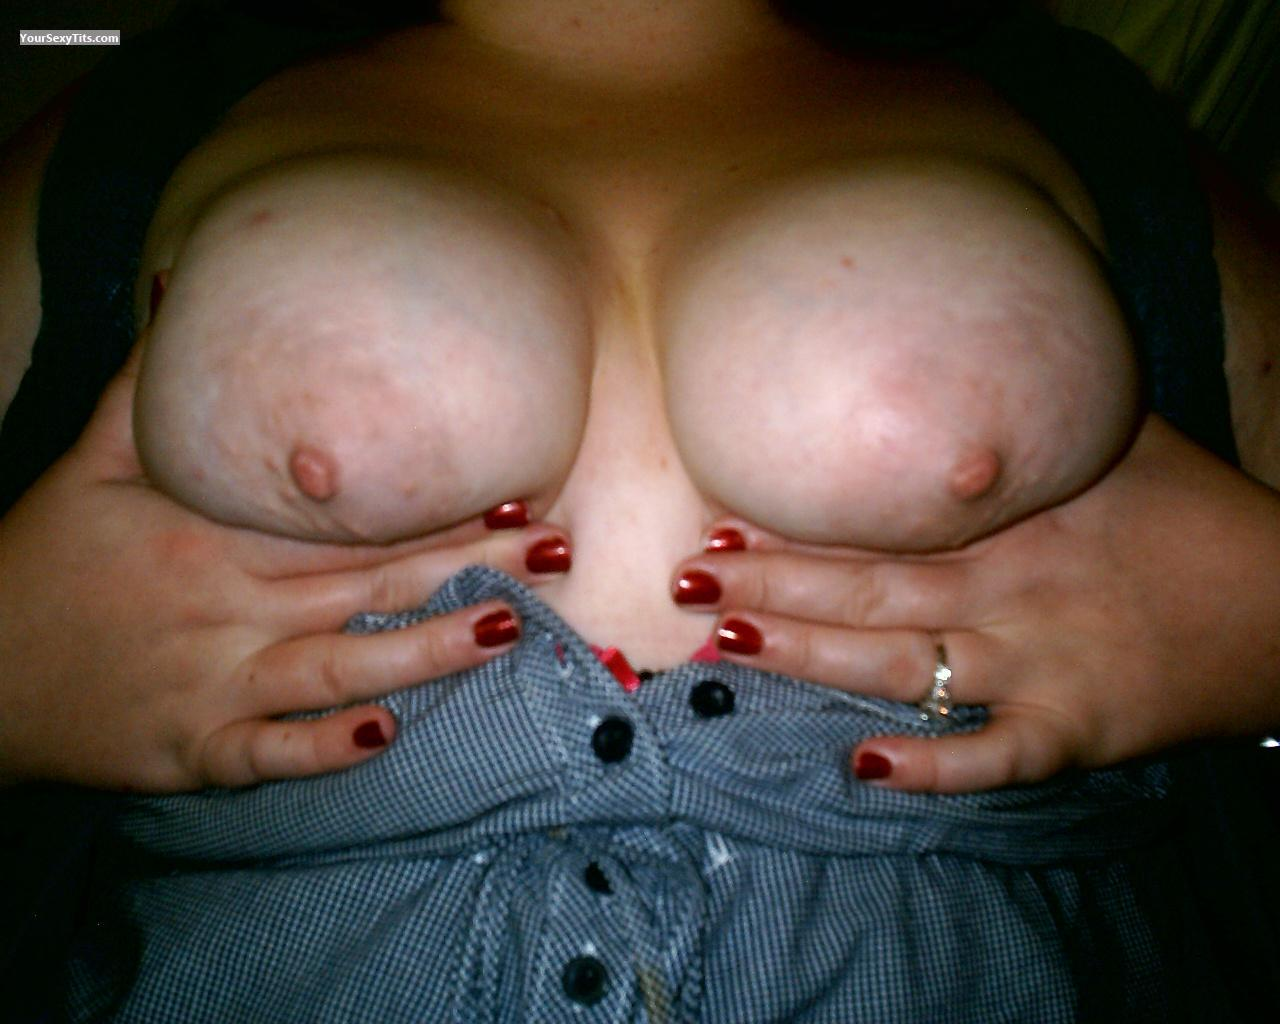 Tit Flash: Wife's Big Tits - SweetJ from South Africa